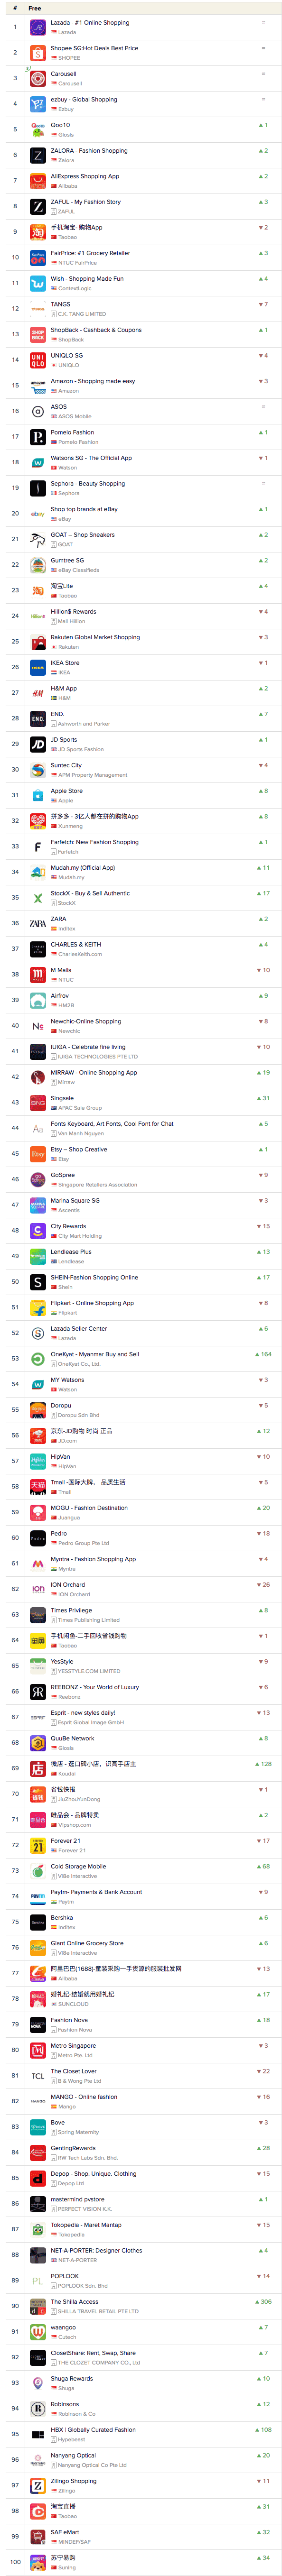 Top Mobile Shopping Apps on iOS in Singapore 19 Mar 2019